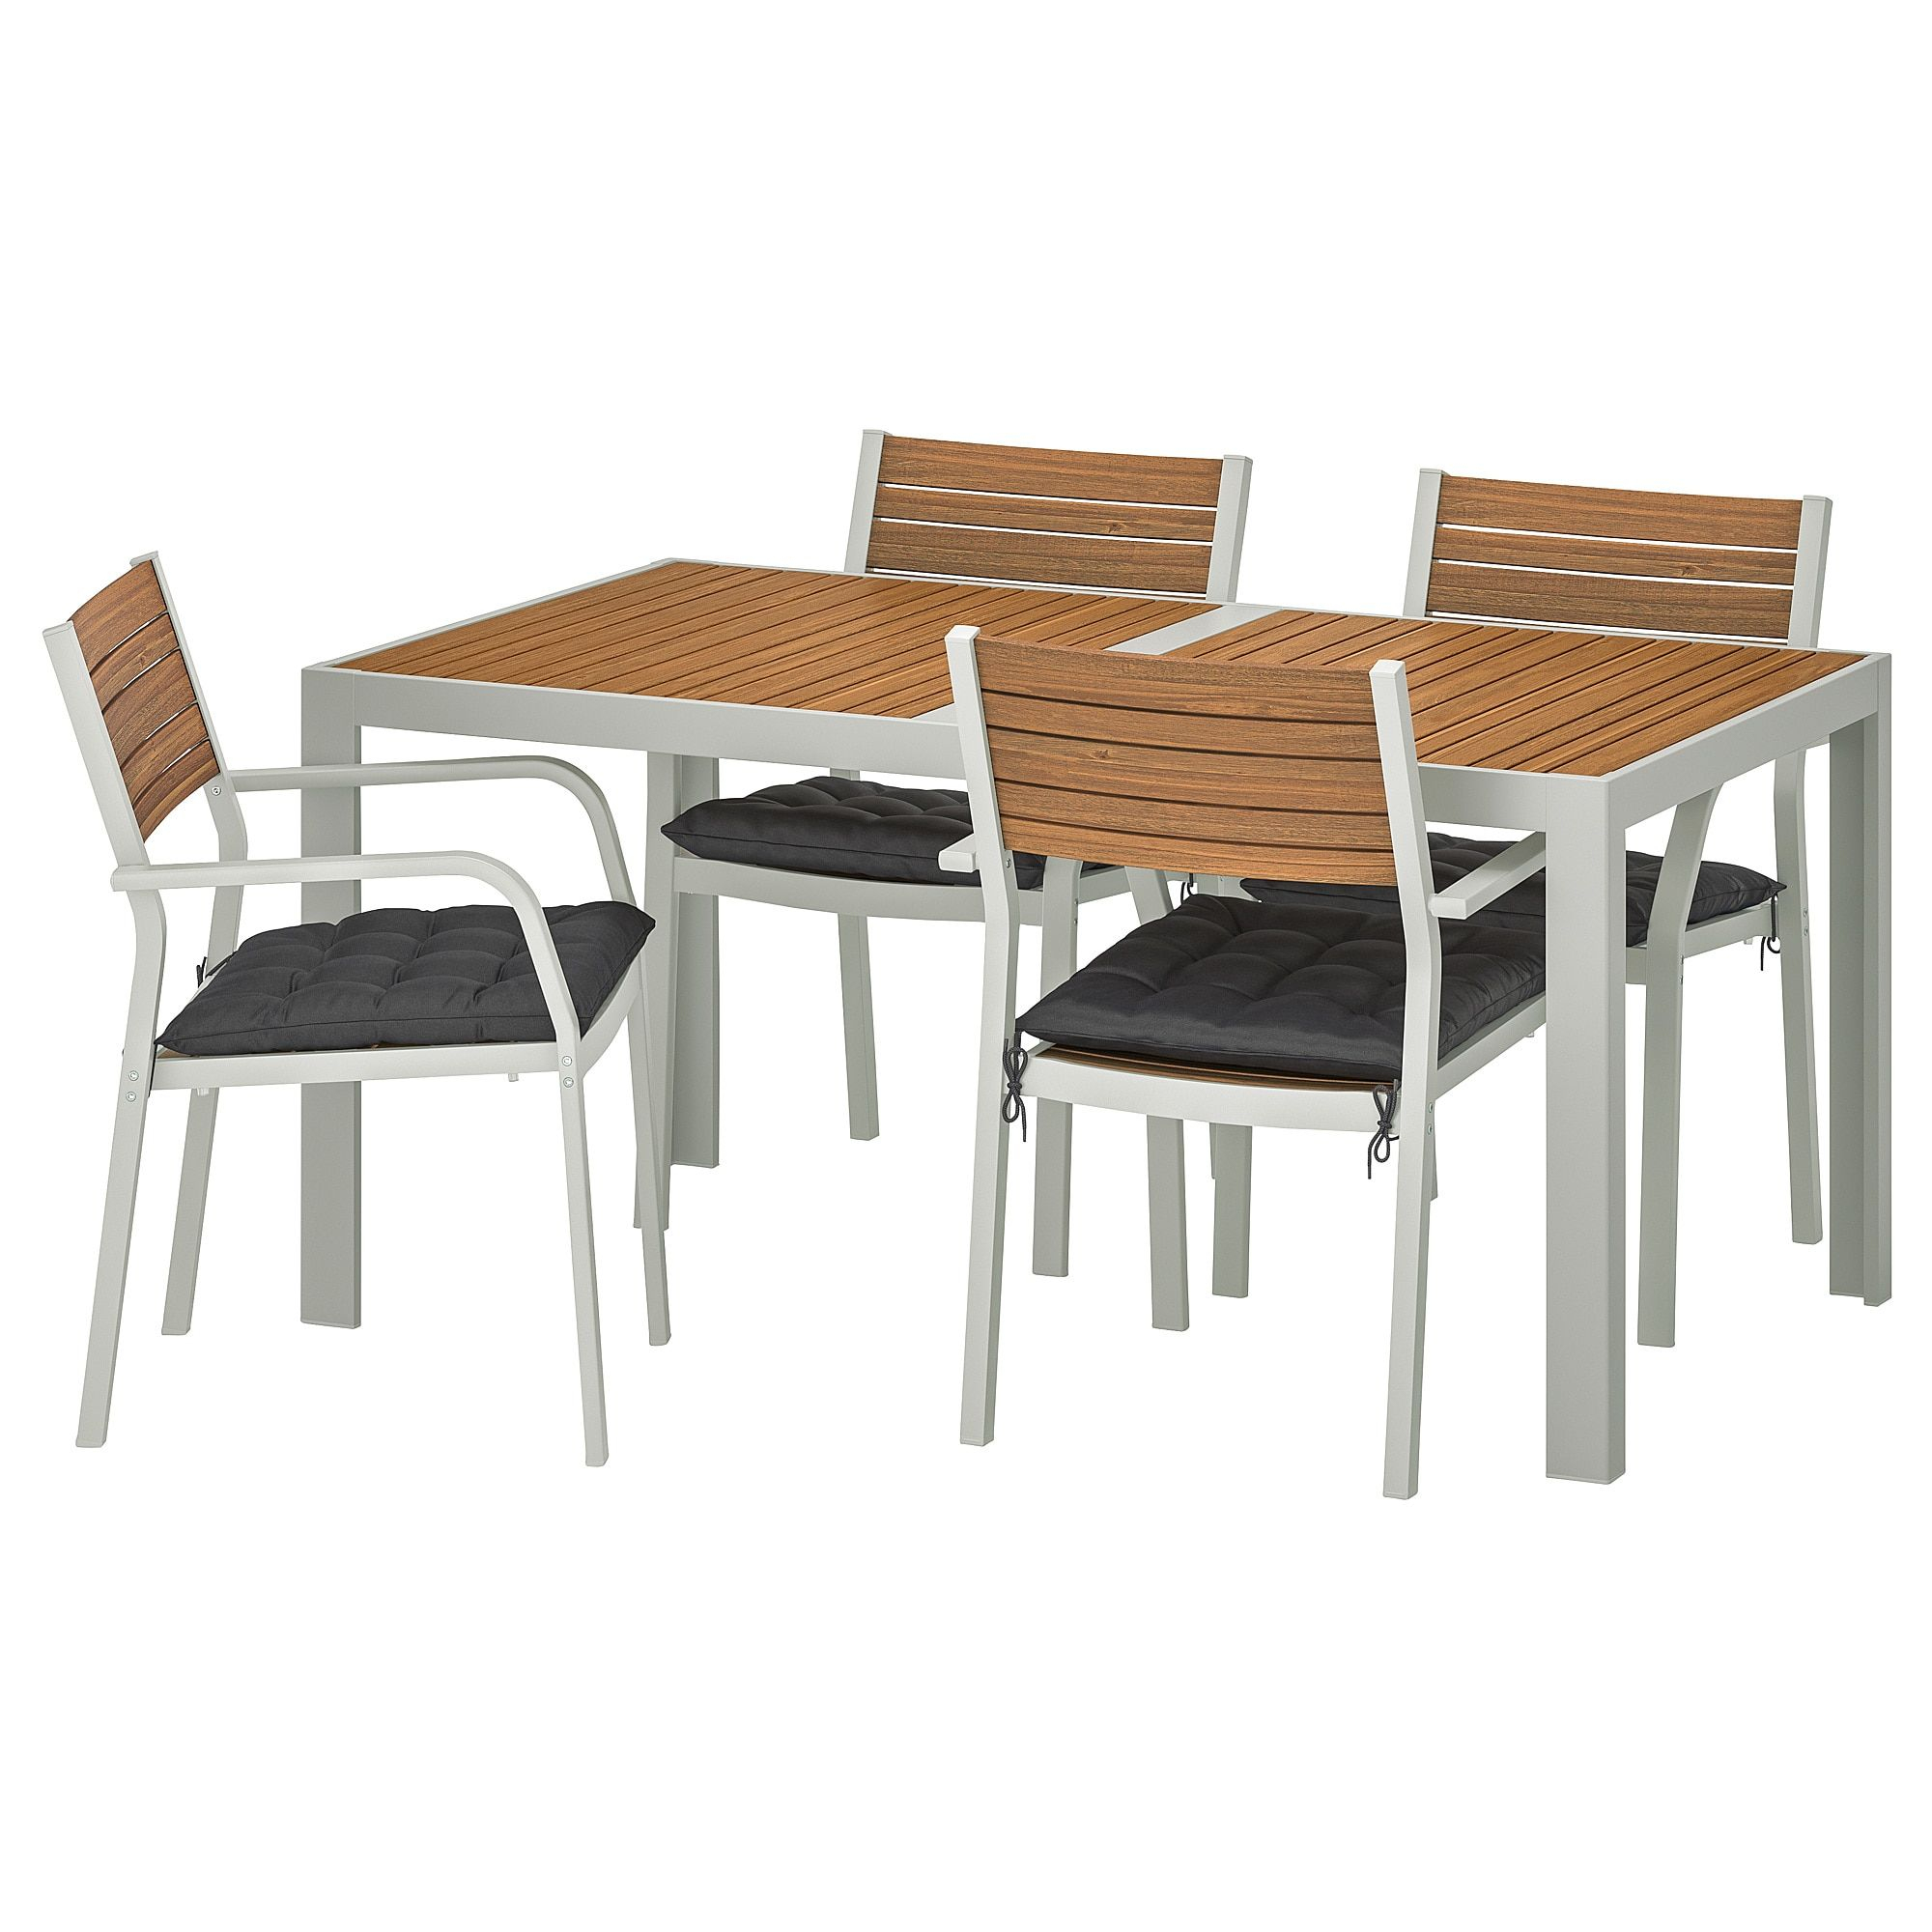 Ikea Table Jardin Charmant Restaurants Kokteil Bar S | Salon ... destiné Tables De Jardin Ikea